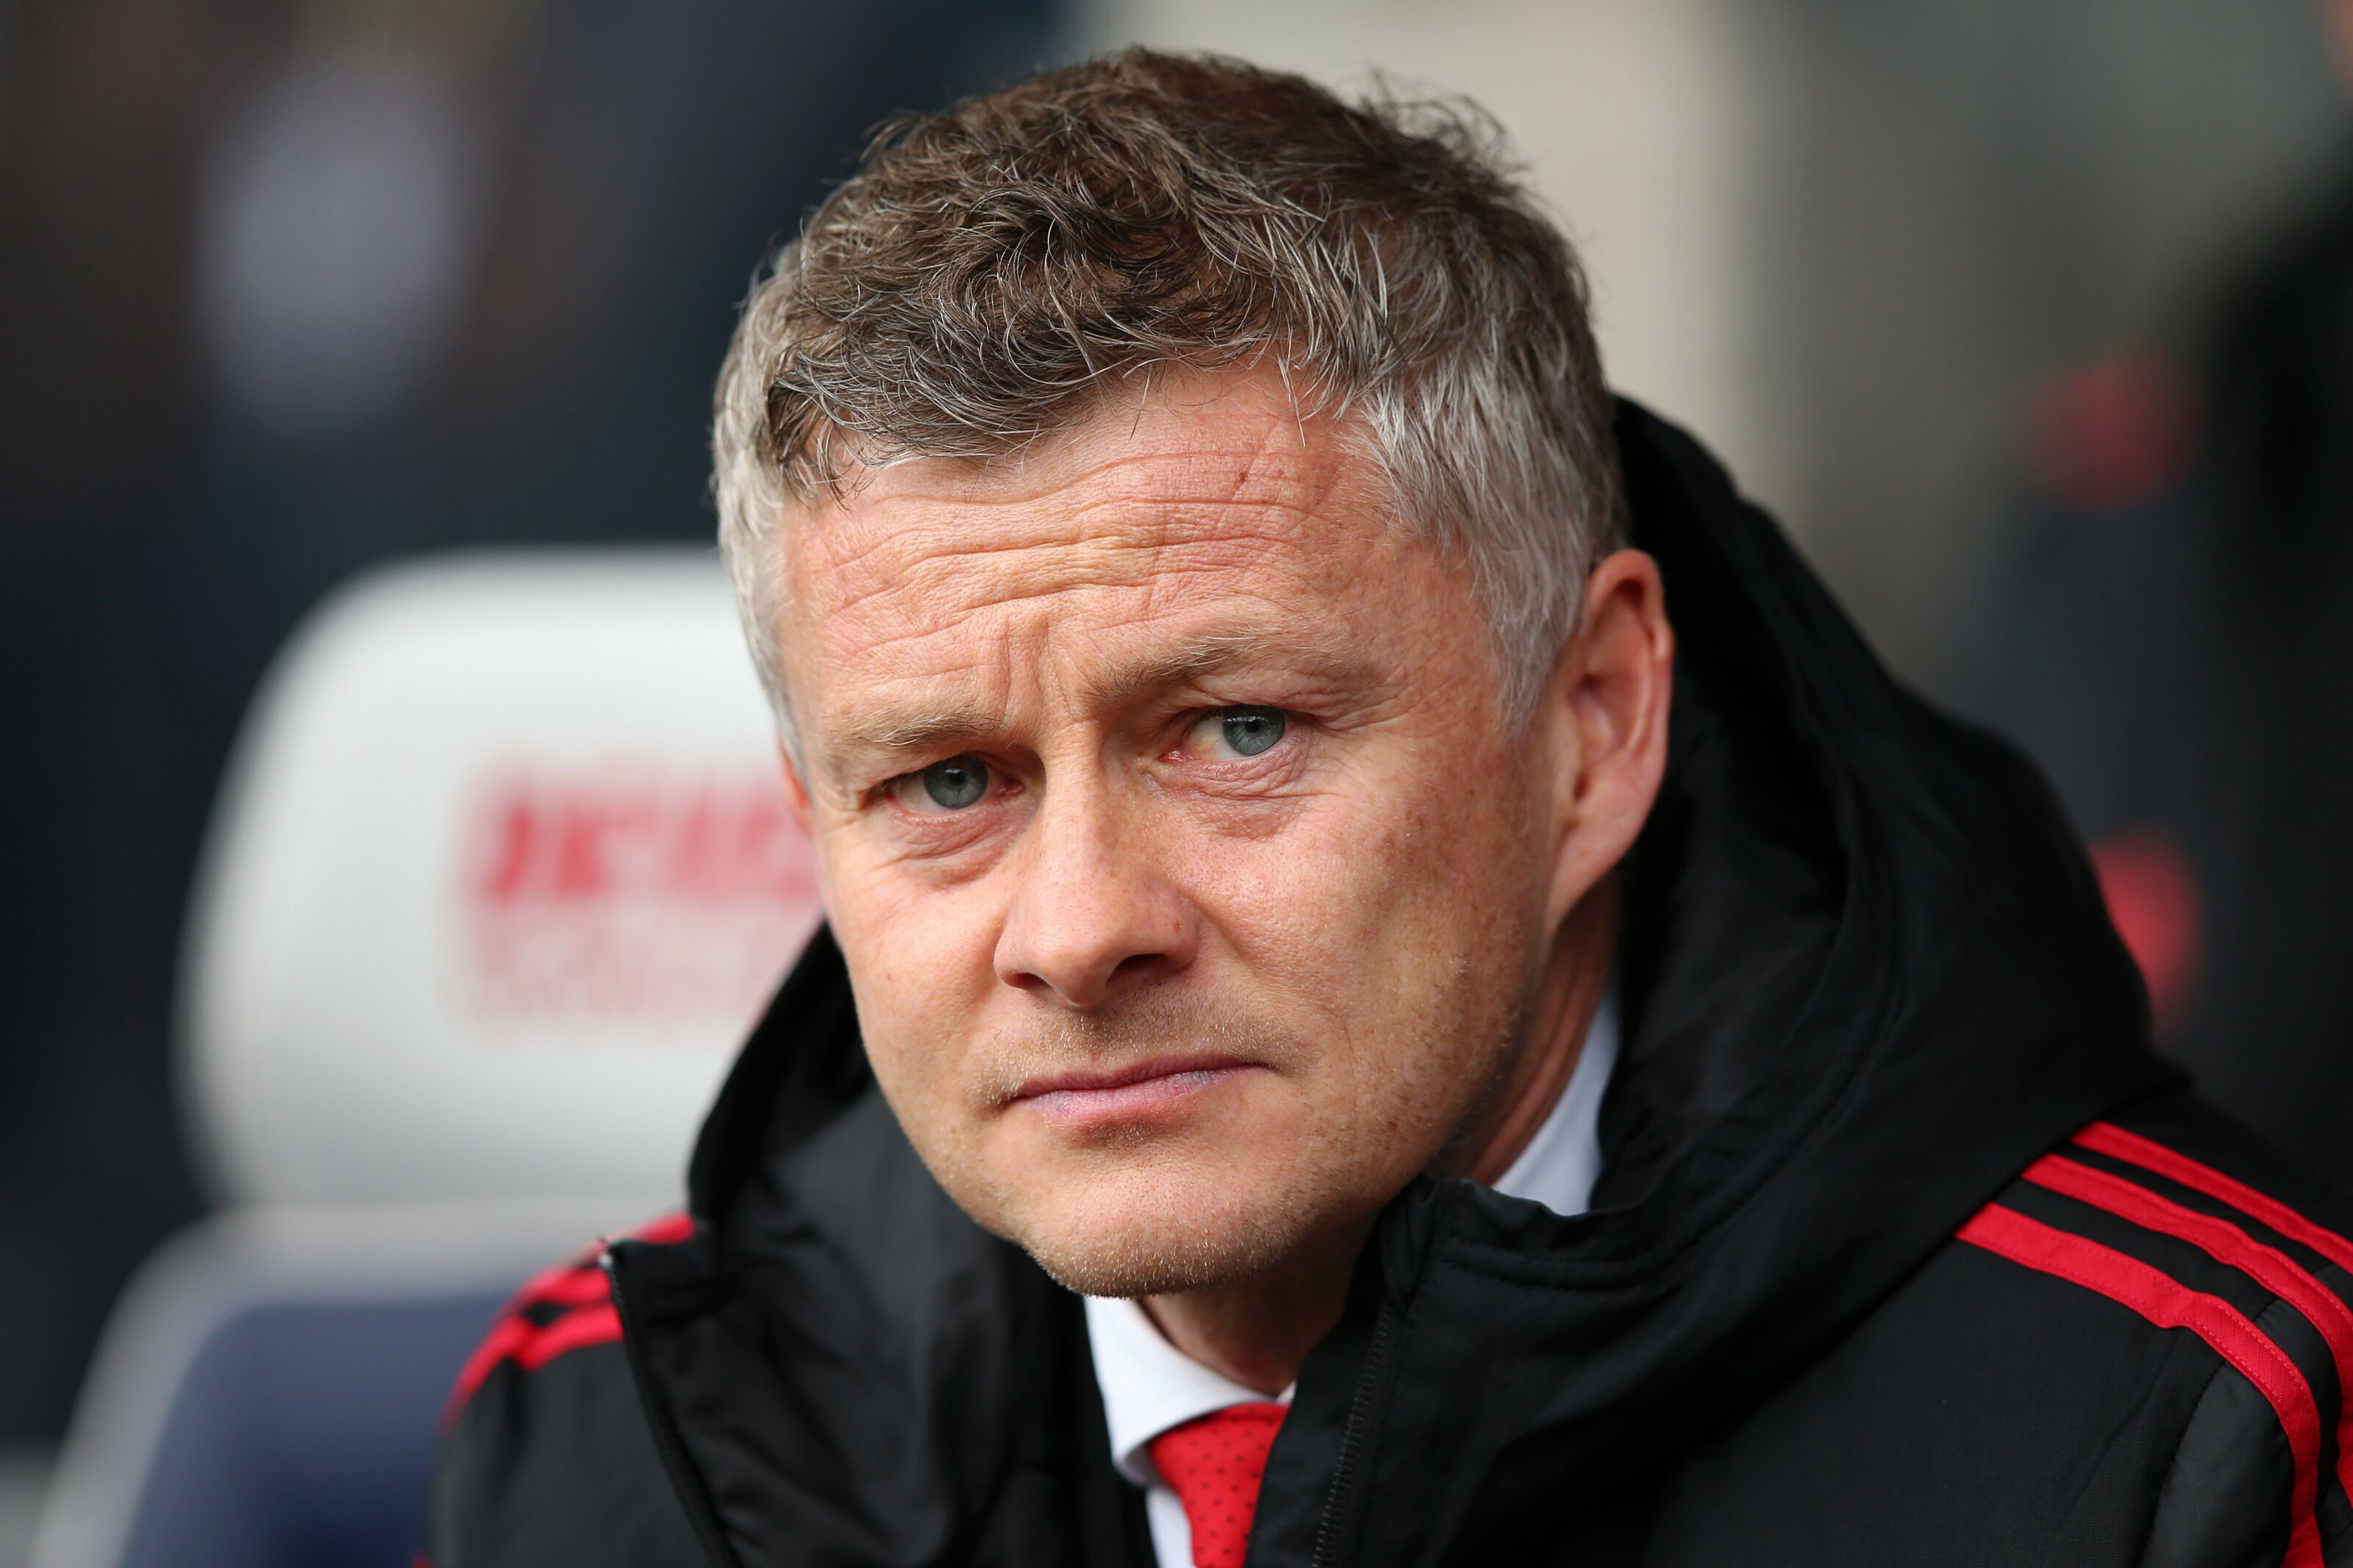 Could next season be Ole Gunnar Solskjaer's last at Manchester United?